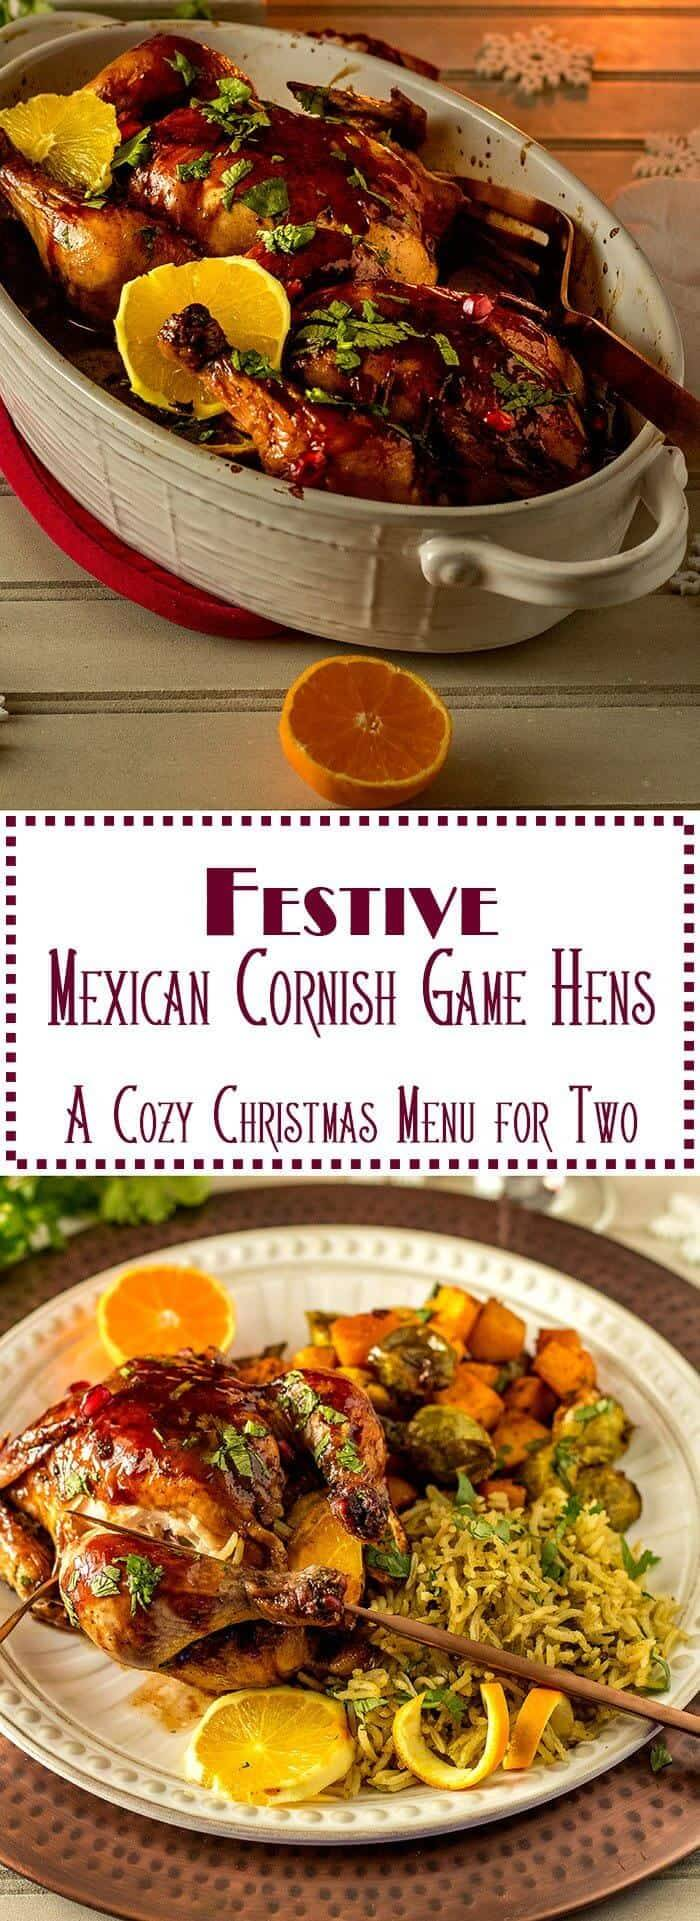 Succulent. Spicy. Sweet. Savory. Or more. Festive Mexican Cornish Game Hens for Two with Mexican flavors is a lovely main course for two, and easily scaled up for more! - #MexicanCornishhens #HealthyMexican #Cornishgamehens #holidaymaincourse